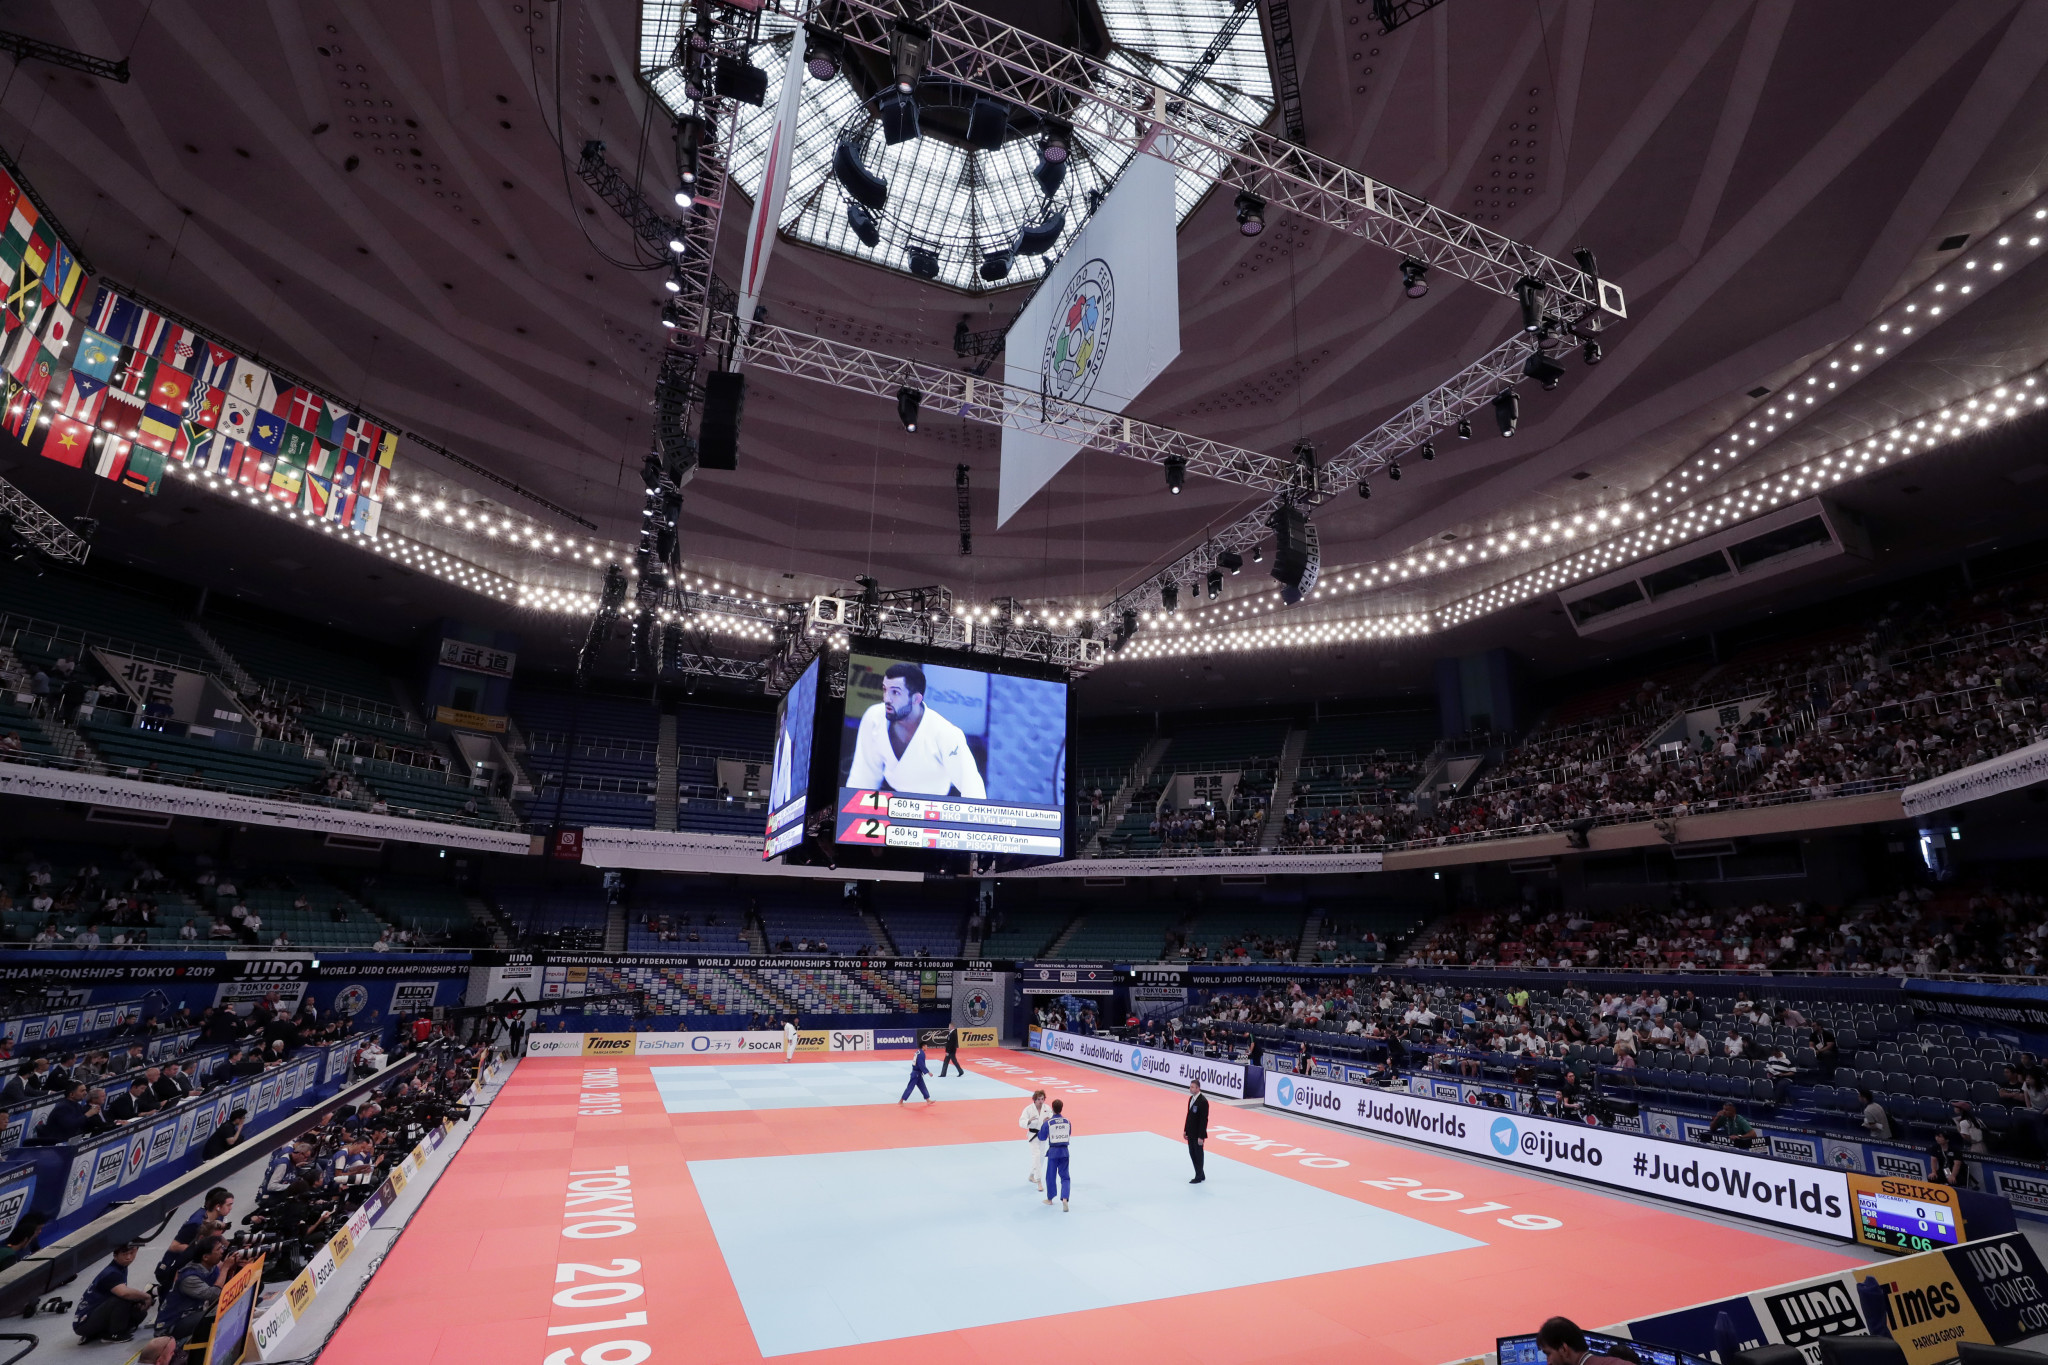 The Championships are taking place at Nippon Budokan, which will host judo at the 2020 Olympics ©Getty Images